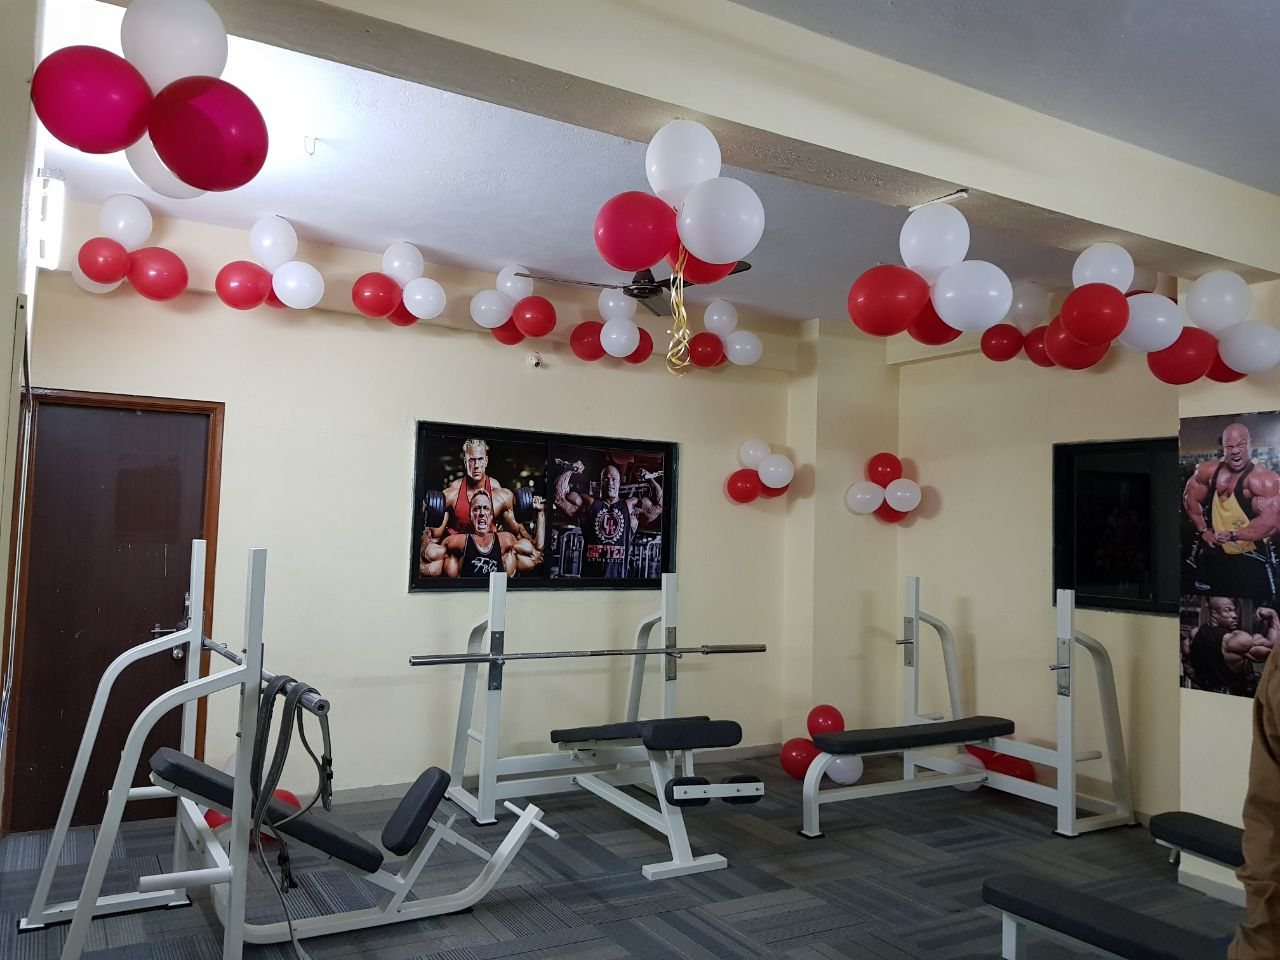 Gold Fitness Gym_image6